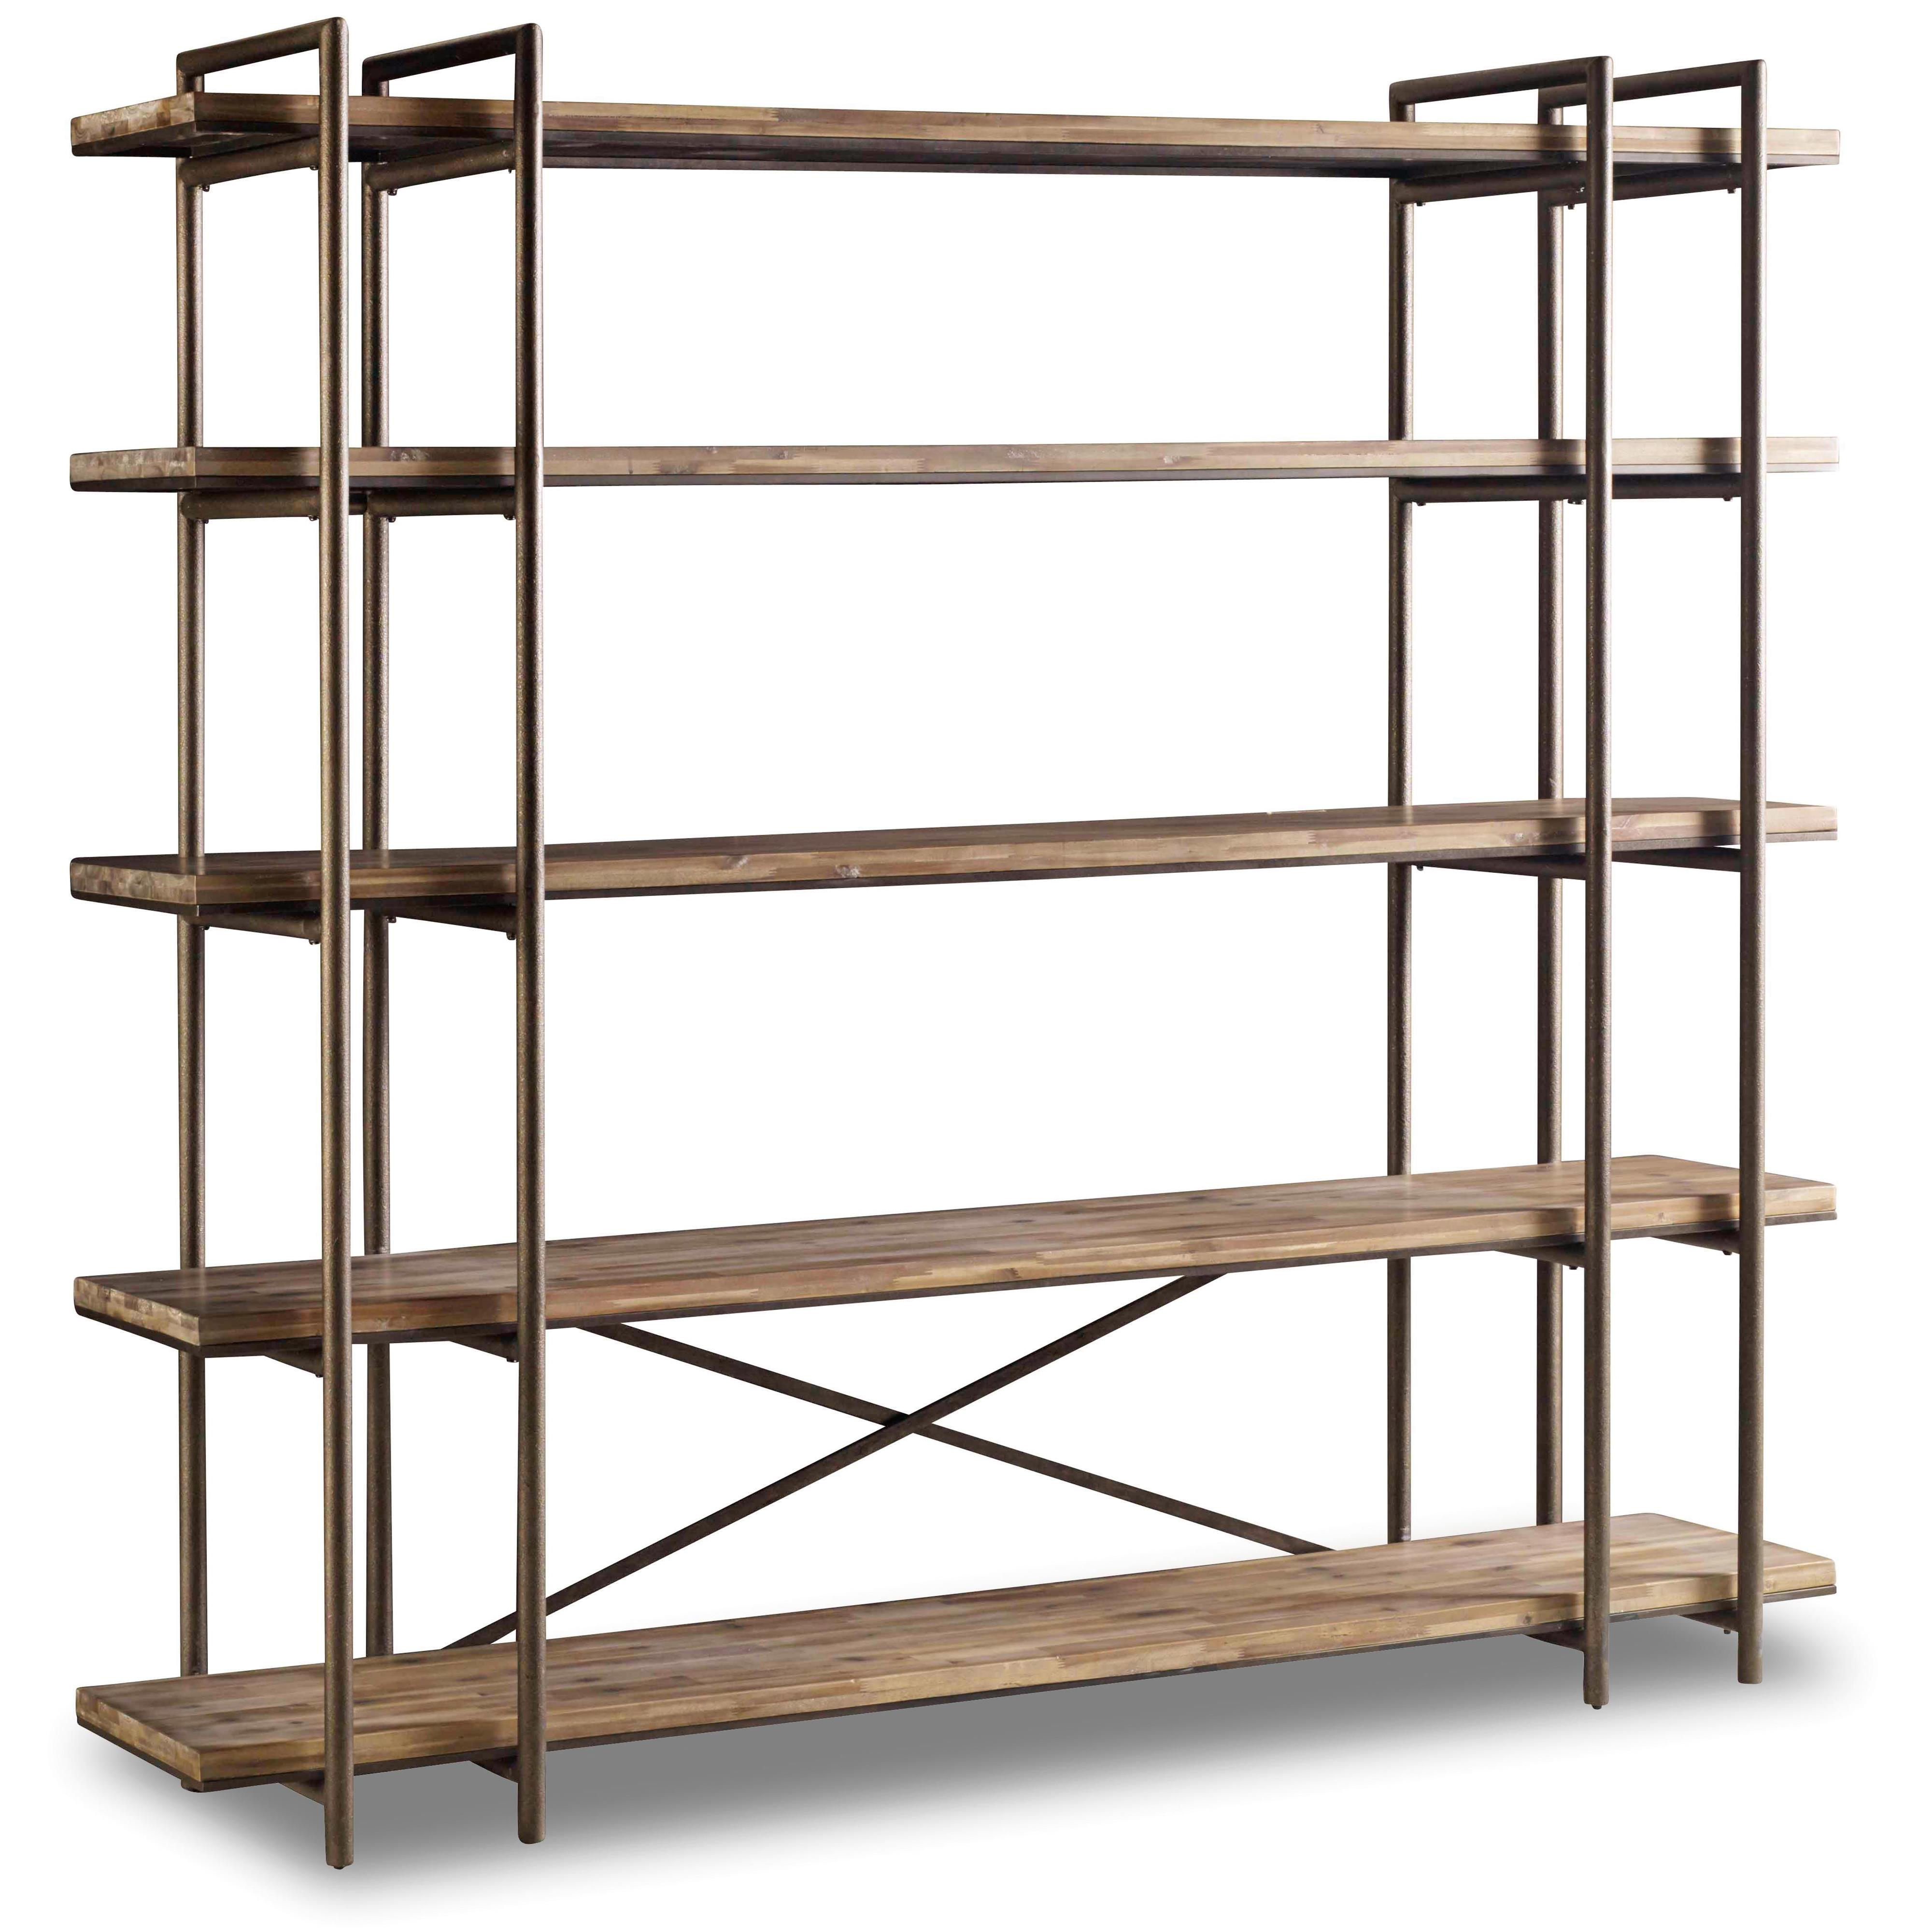 Charming By Hooker Furniture. Scaffold Bookcase/Entertainment Console With 5 Shelves